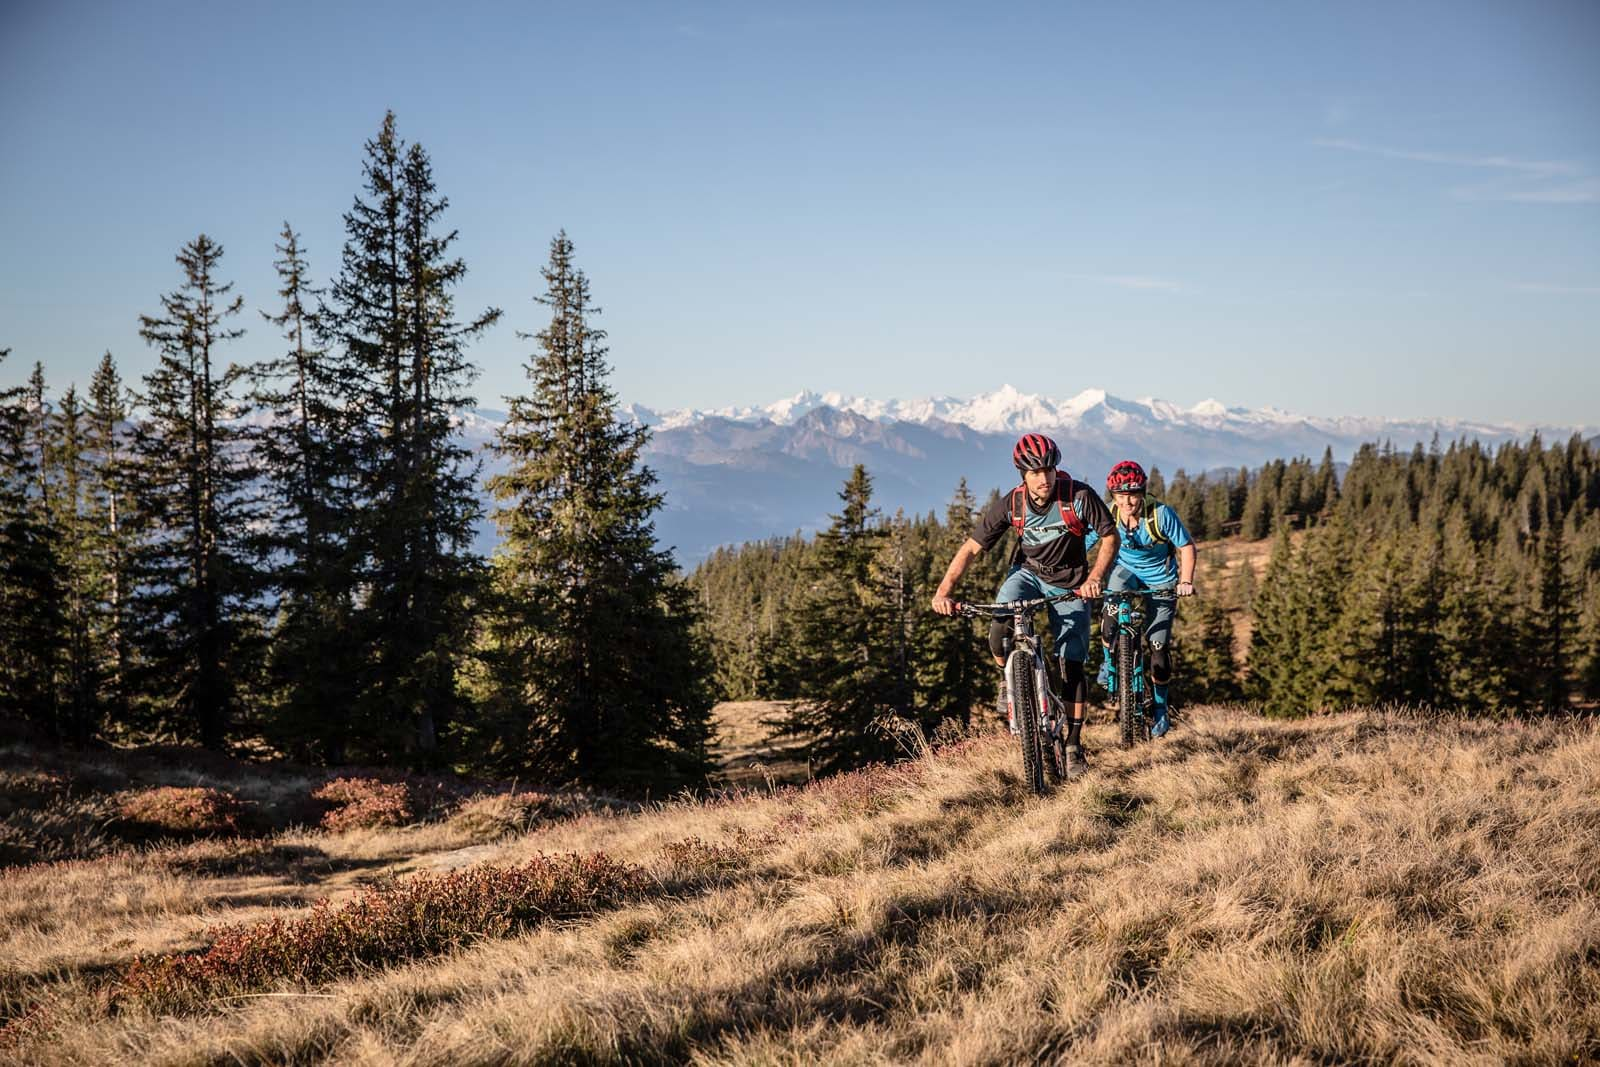 Mountainbike tour in the Salzburger Sportwelt and Obertauern